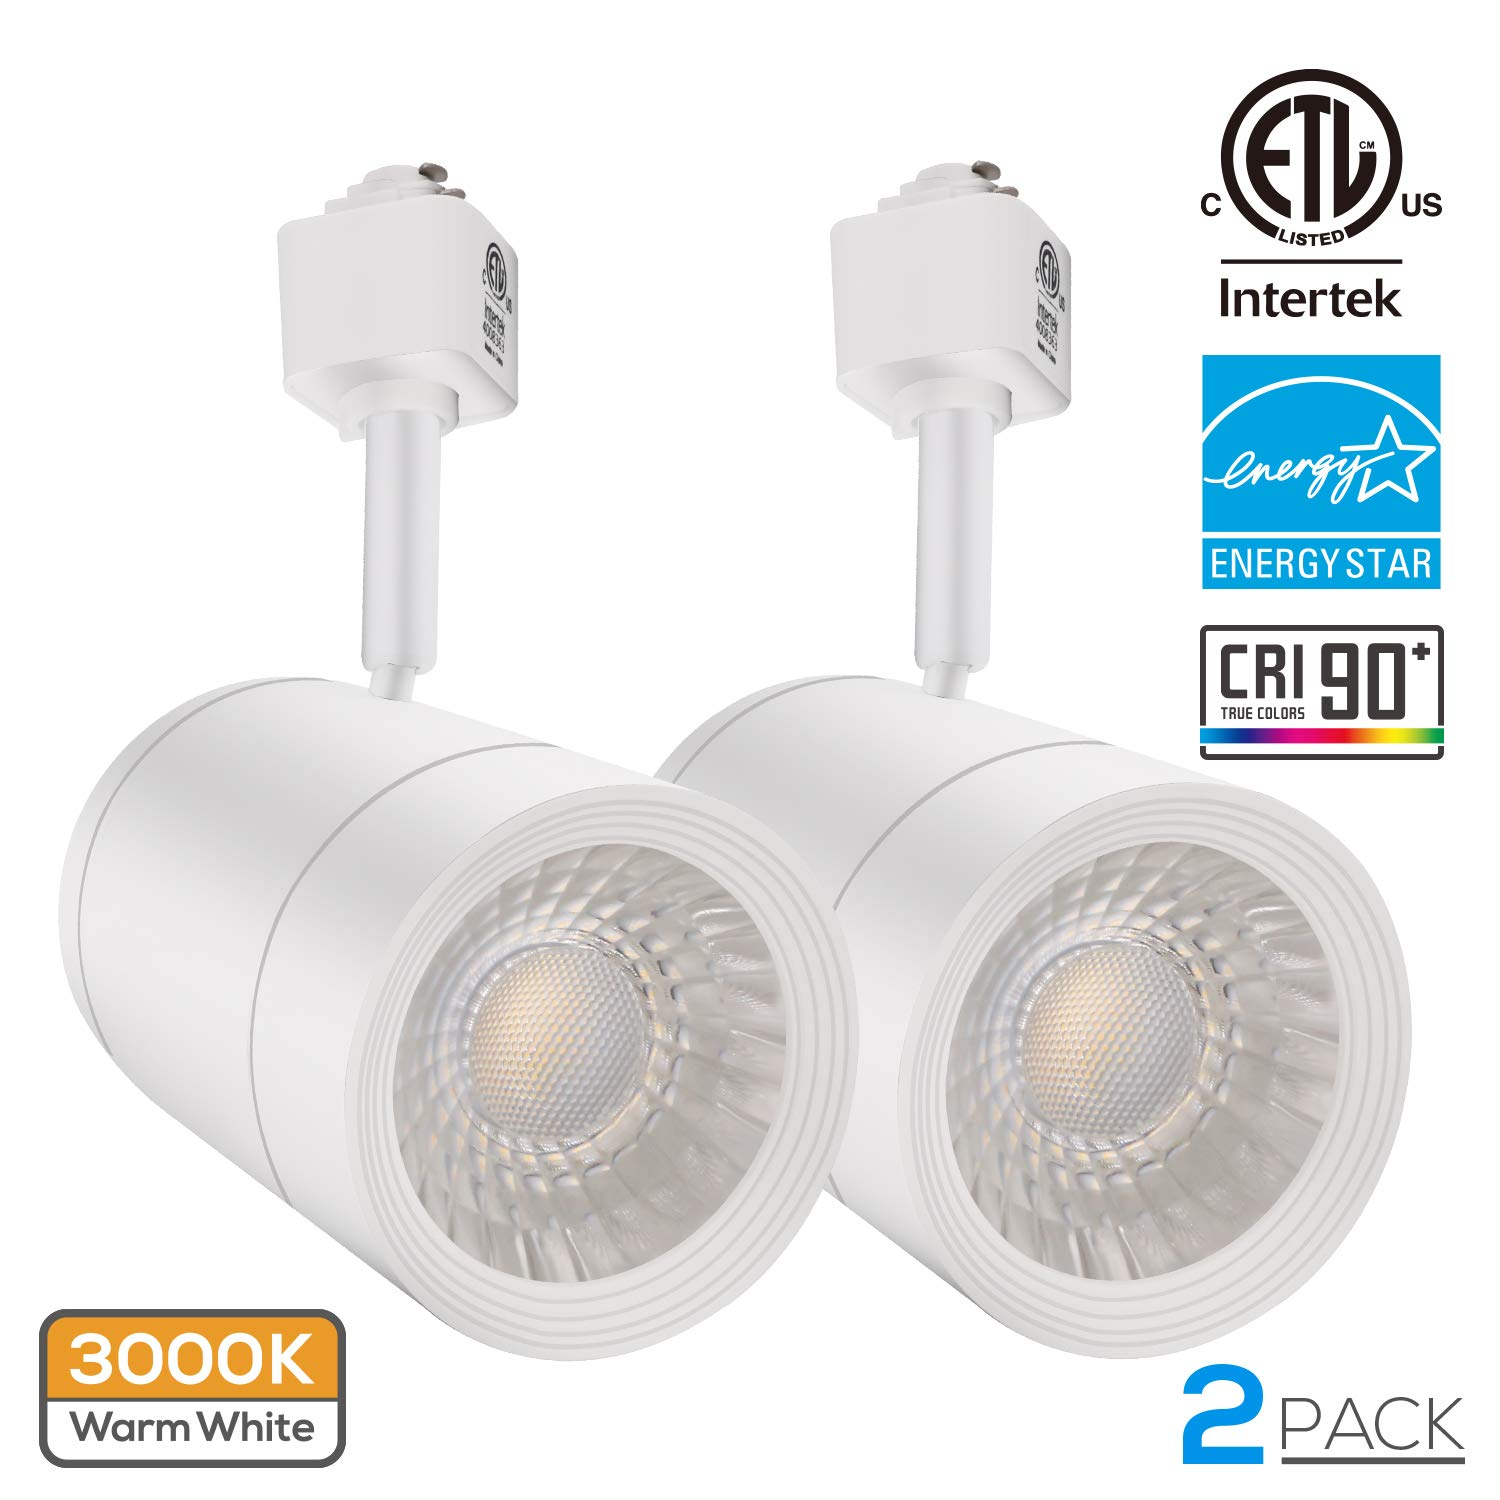 2 PACK 17.5W (85W Equiv.) Integrated CRI90+ LED Track Light Head, Dimmable 38° Spotlight Track Light, 1200lm ENERGY STAR ETL-Listed for Accent Task Wall Art Exhibition Lighting, 3000K Warm White